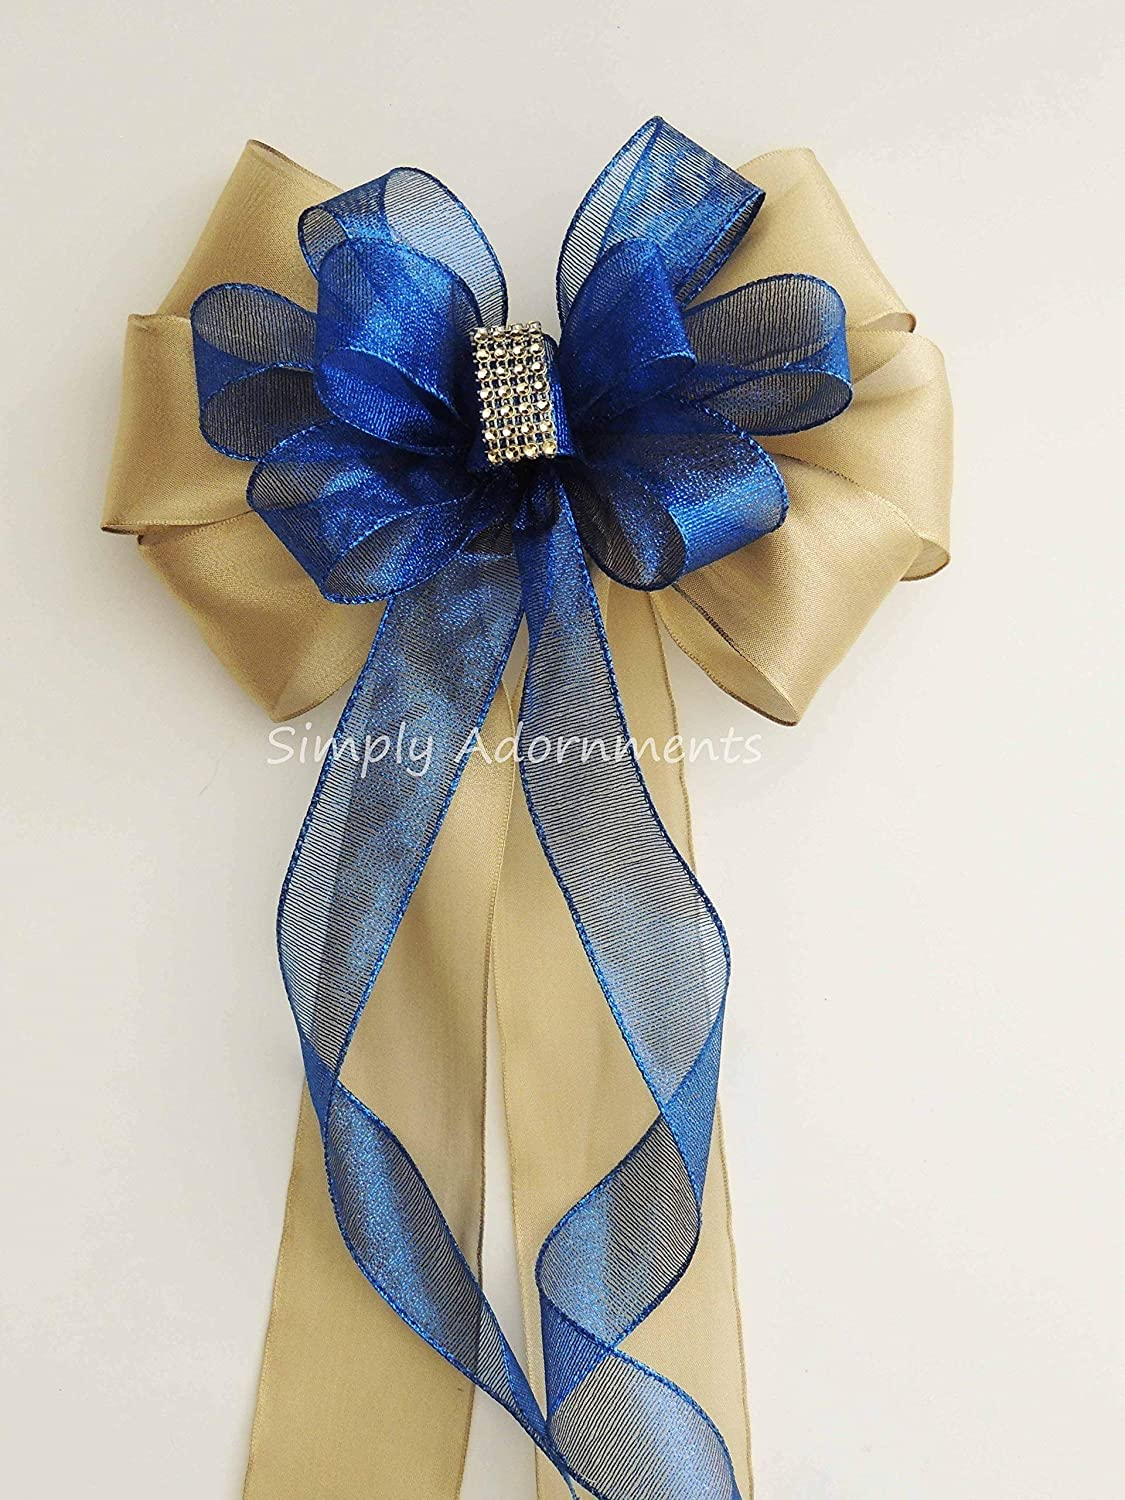 20+ New For Church Royal Blue And Gold Wedding Decorations